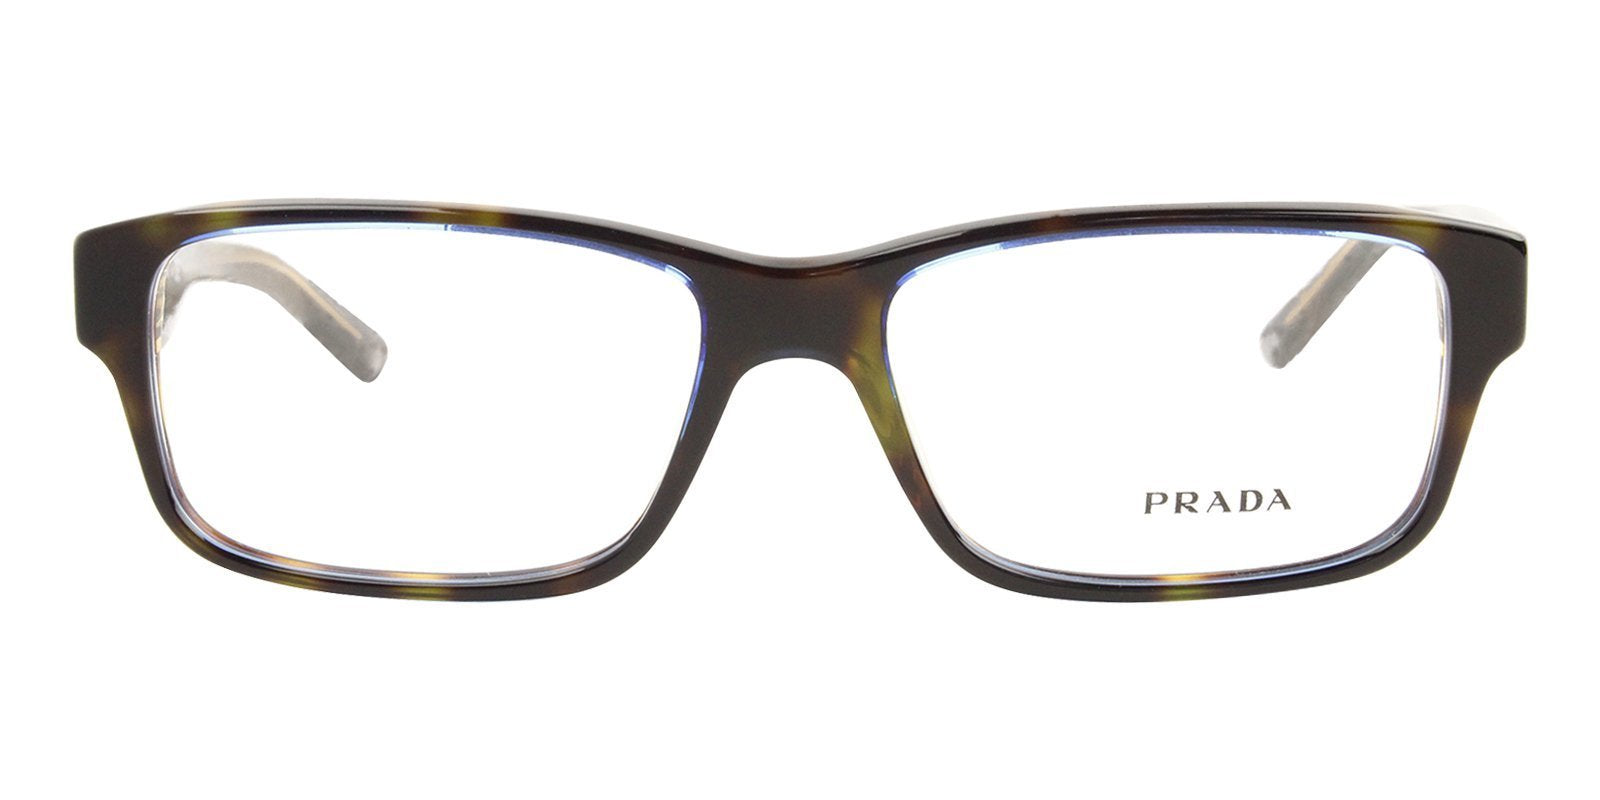 Prada - PR16MV Tortoise/Clear Rectangular Unisex Eyeglasses - 55mm-Eyeglasses-Designer Eyes